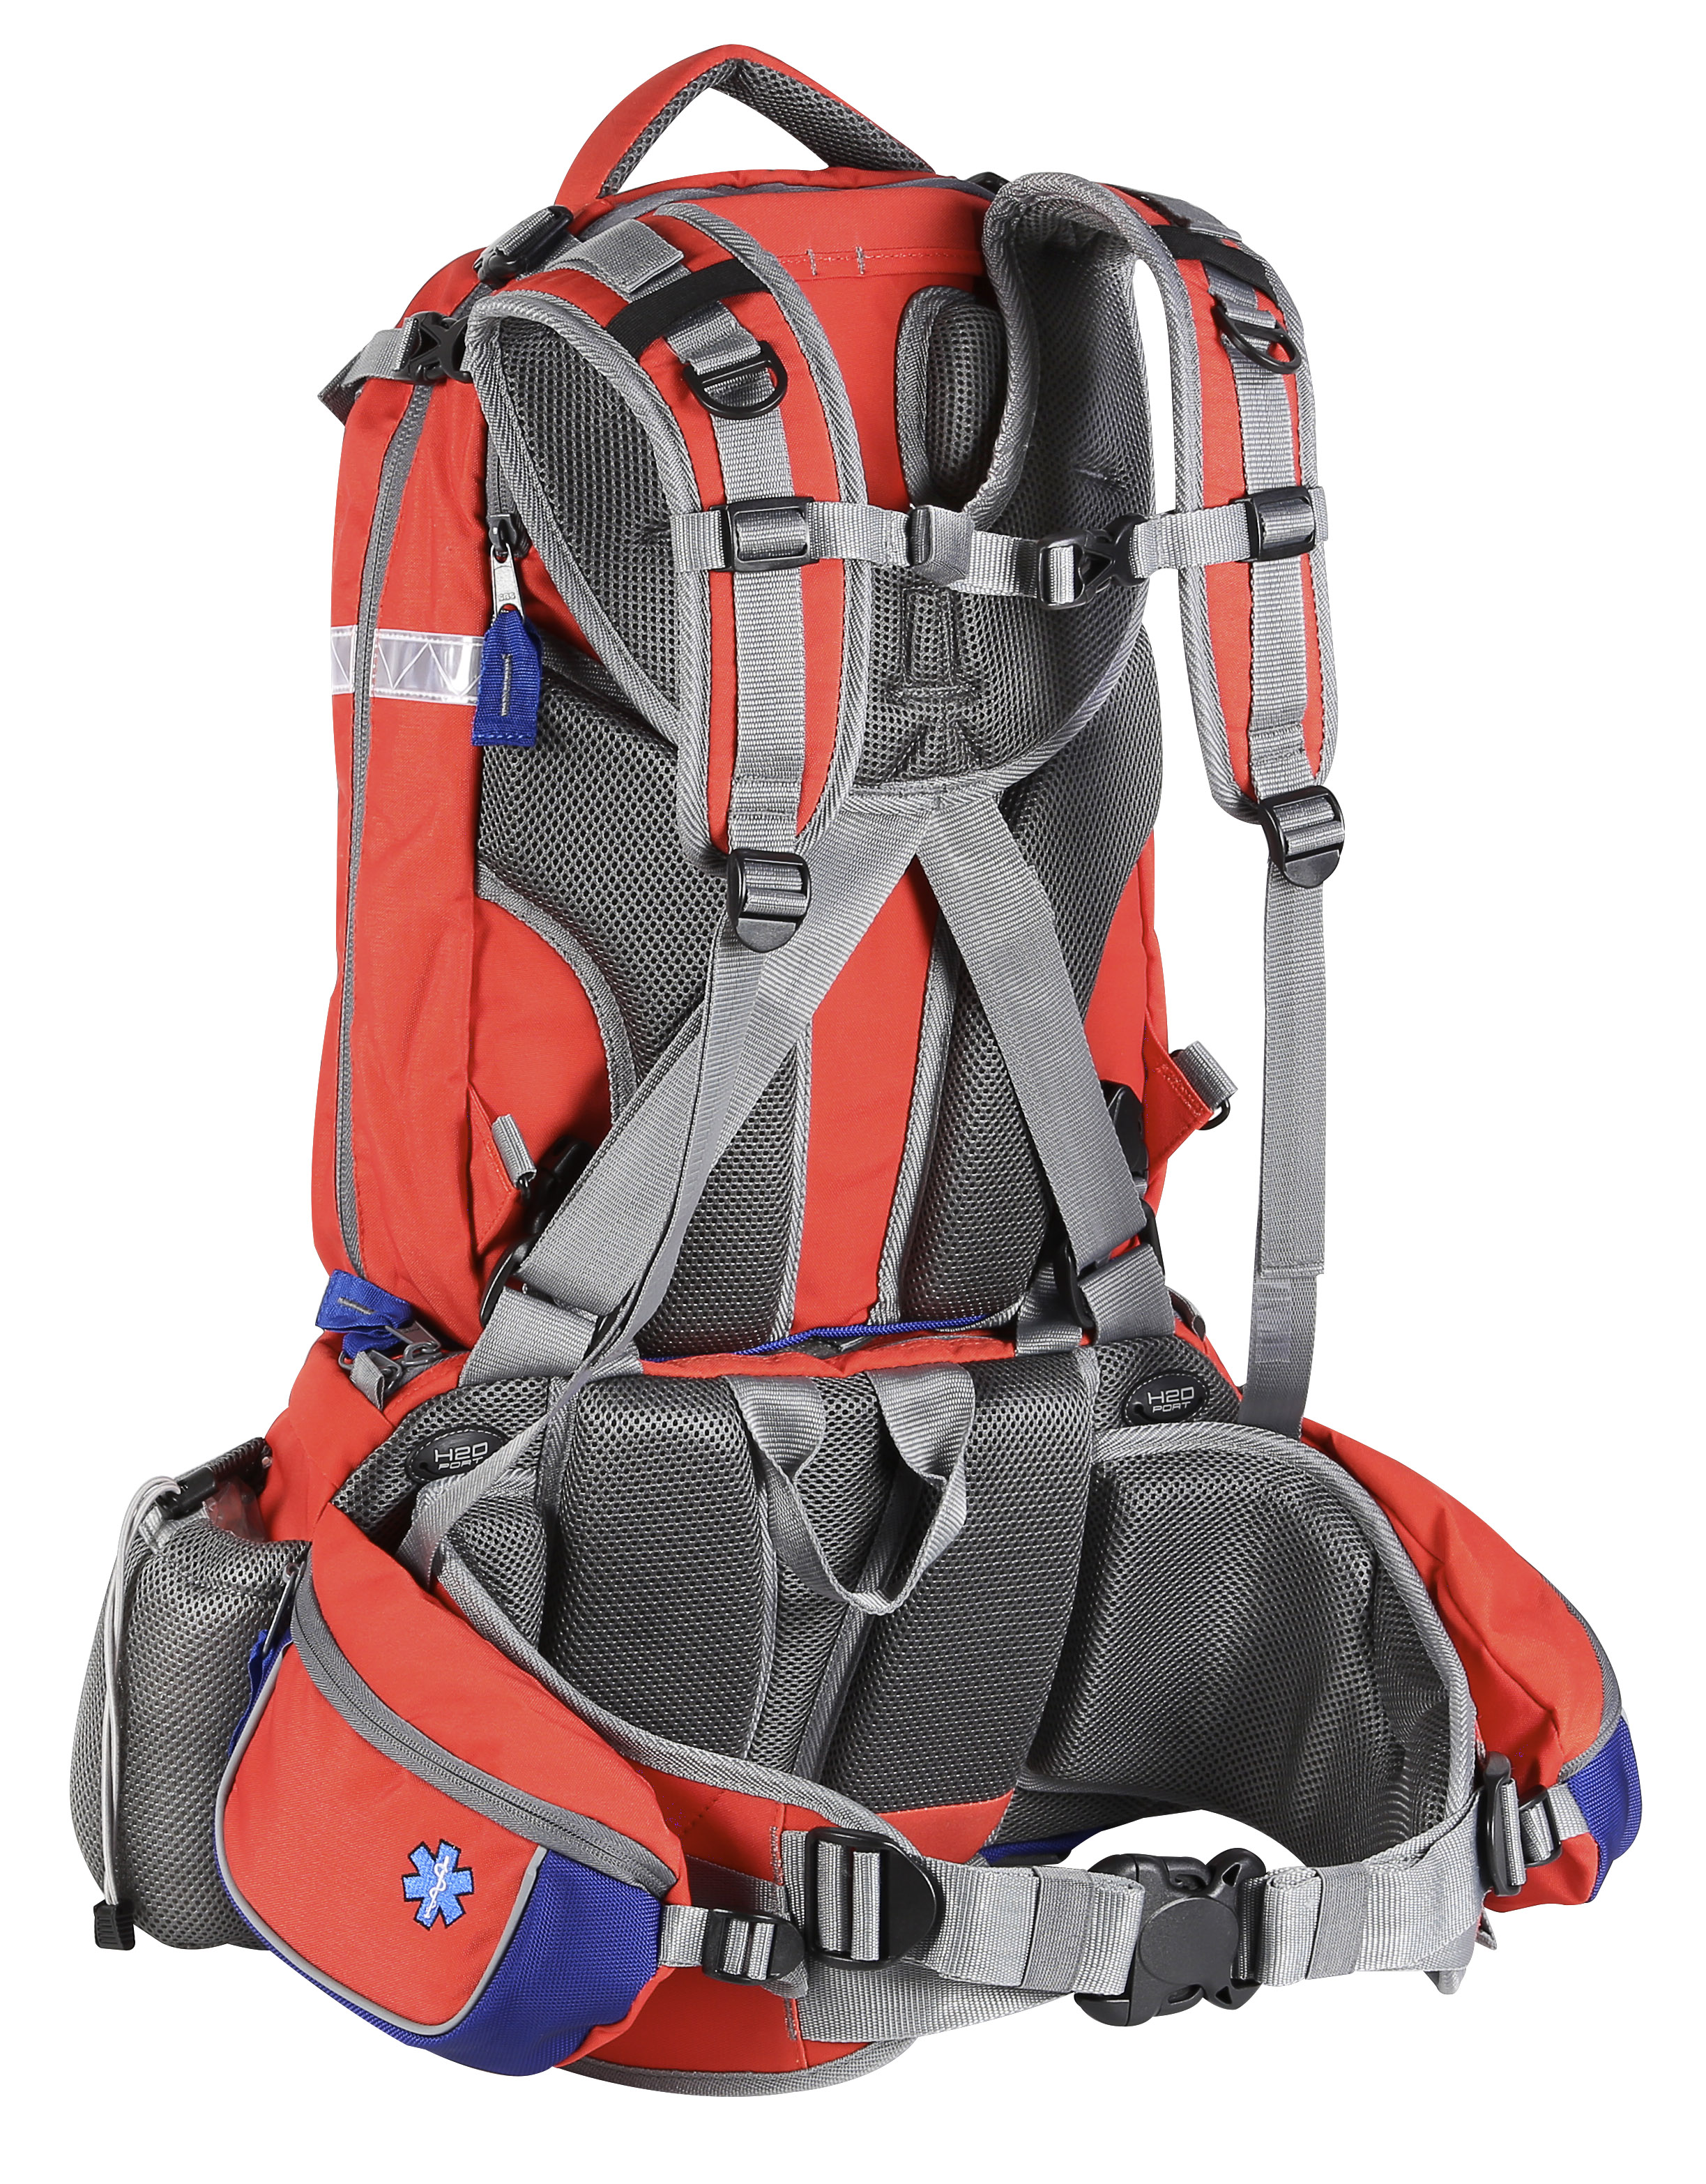 3N1 MEDICAL BACKPACK SYSTEM